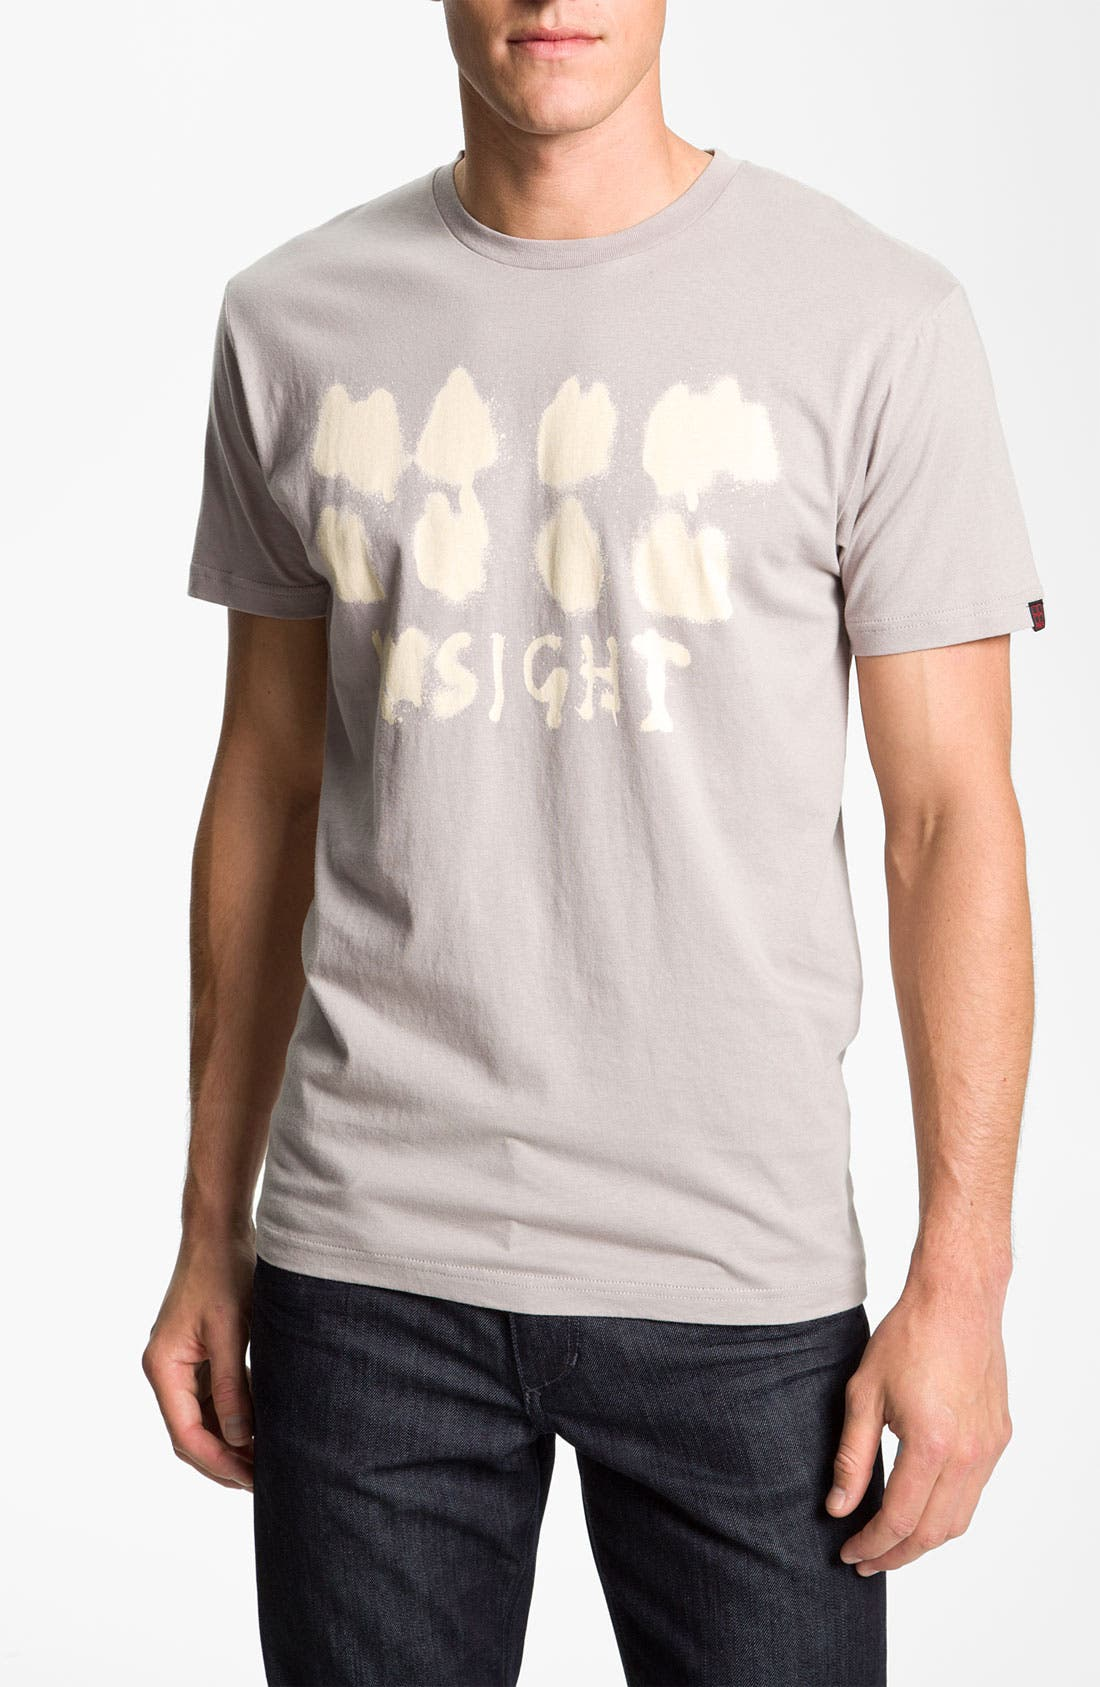 Alternate Image 1 Selected - Insight 'Delinquent Domestic' Graphic T-Shirt